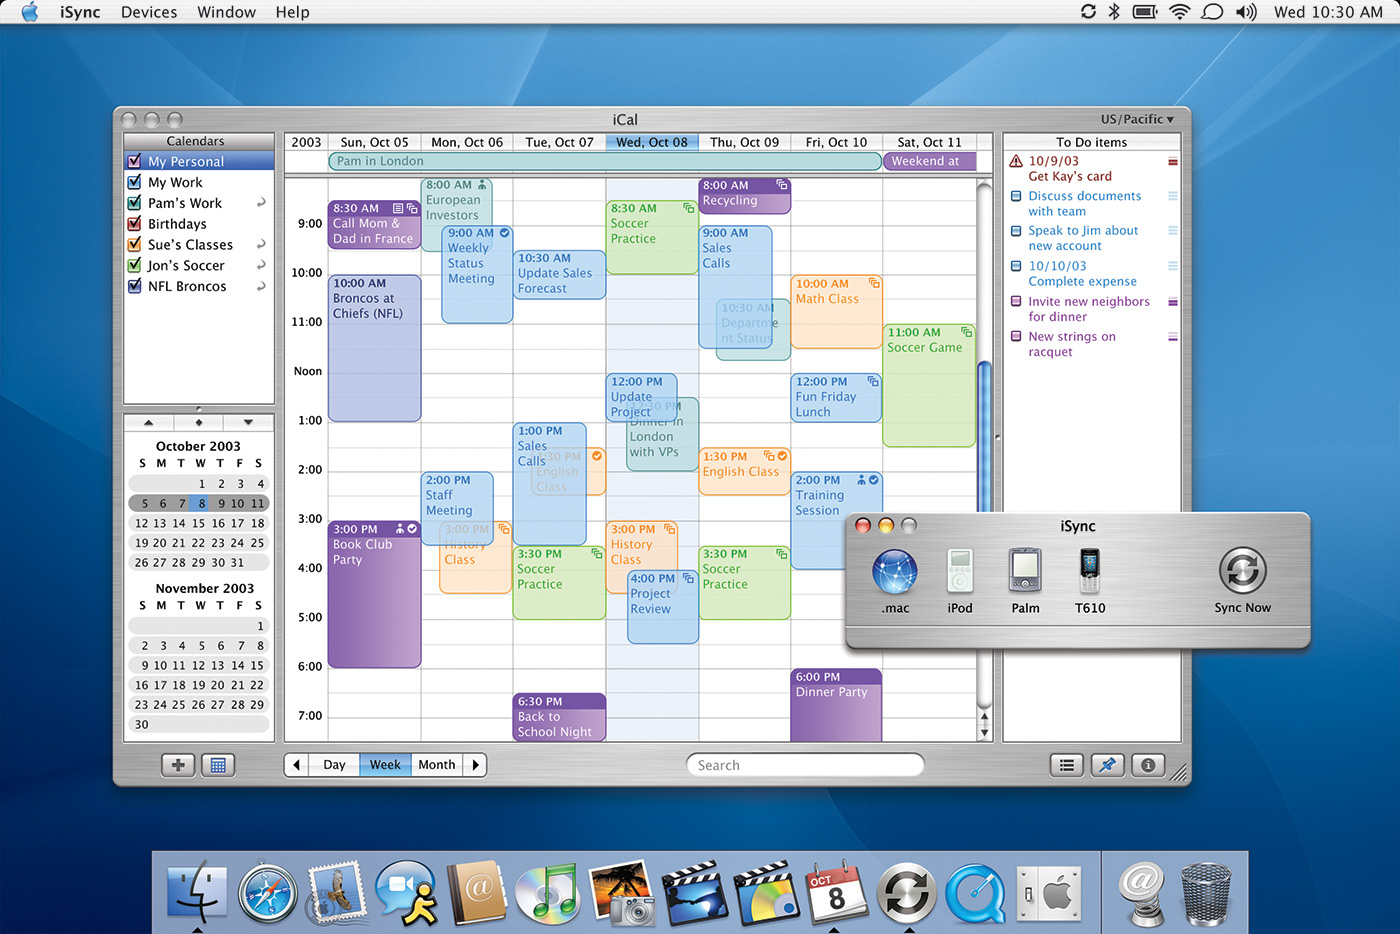 iSync in Mac OS X 10.3 Panther